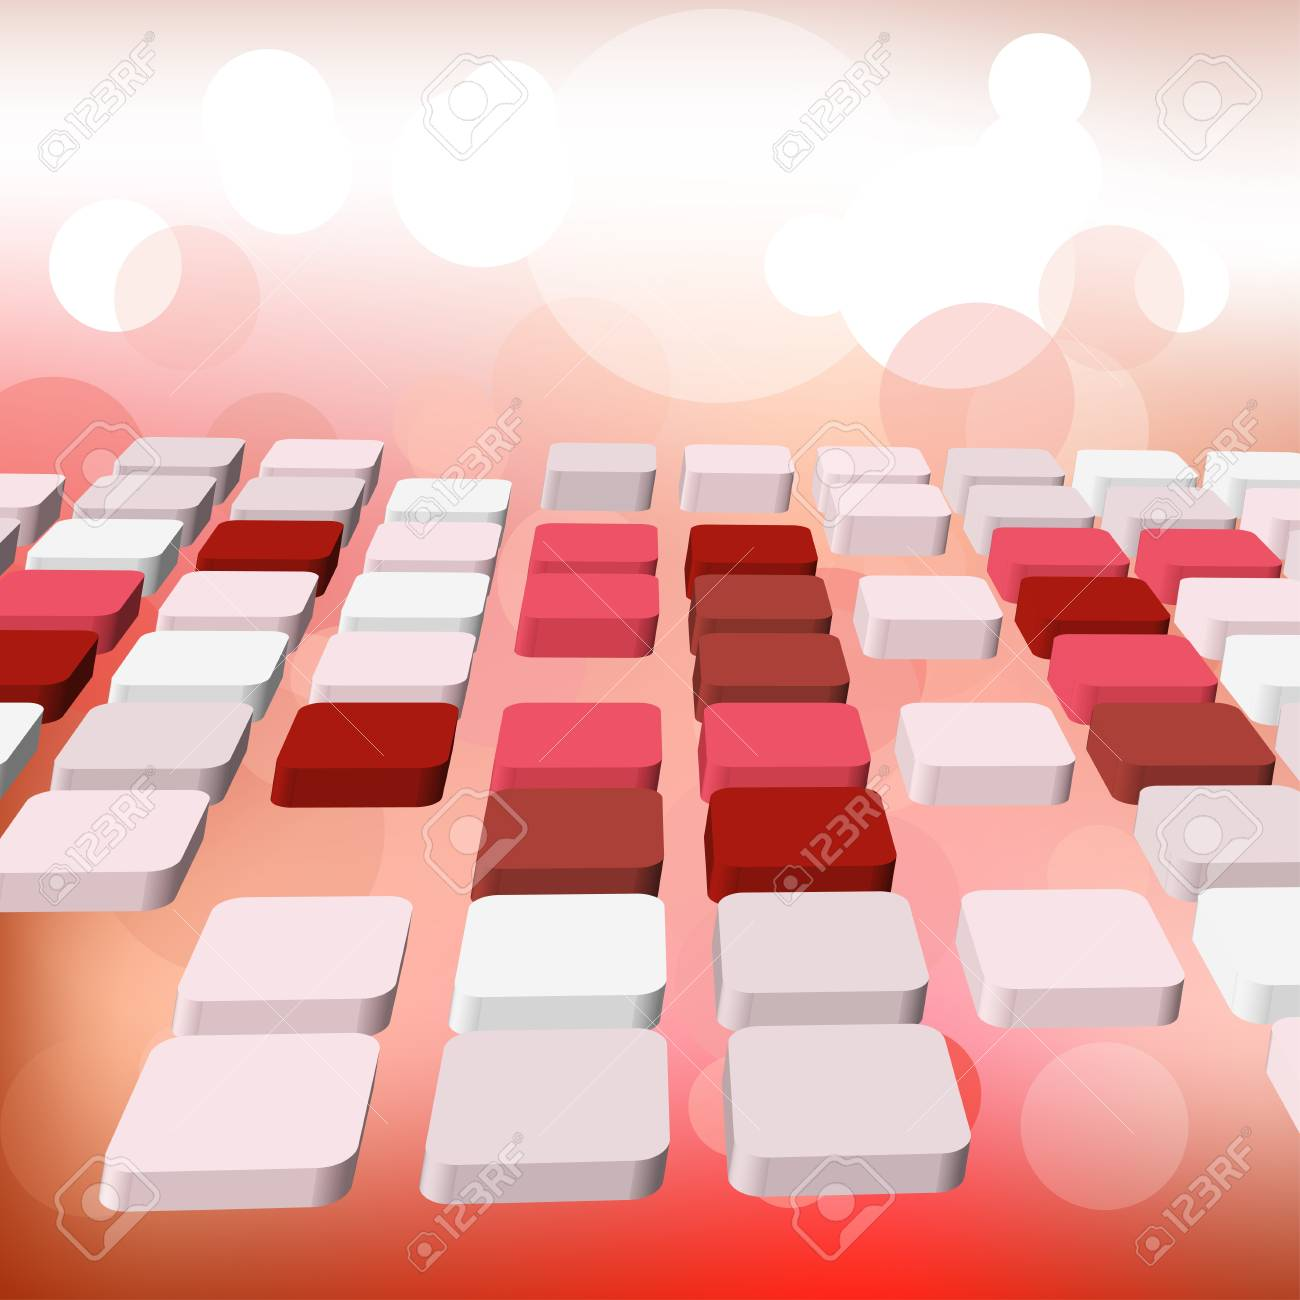 Abstract technology background for use in web design. Vector illustration. Stock Vector - 8881962